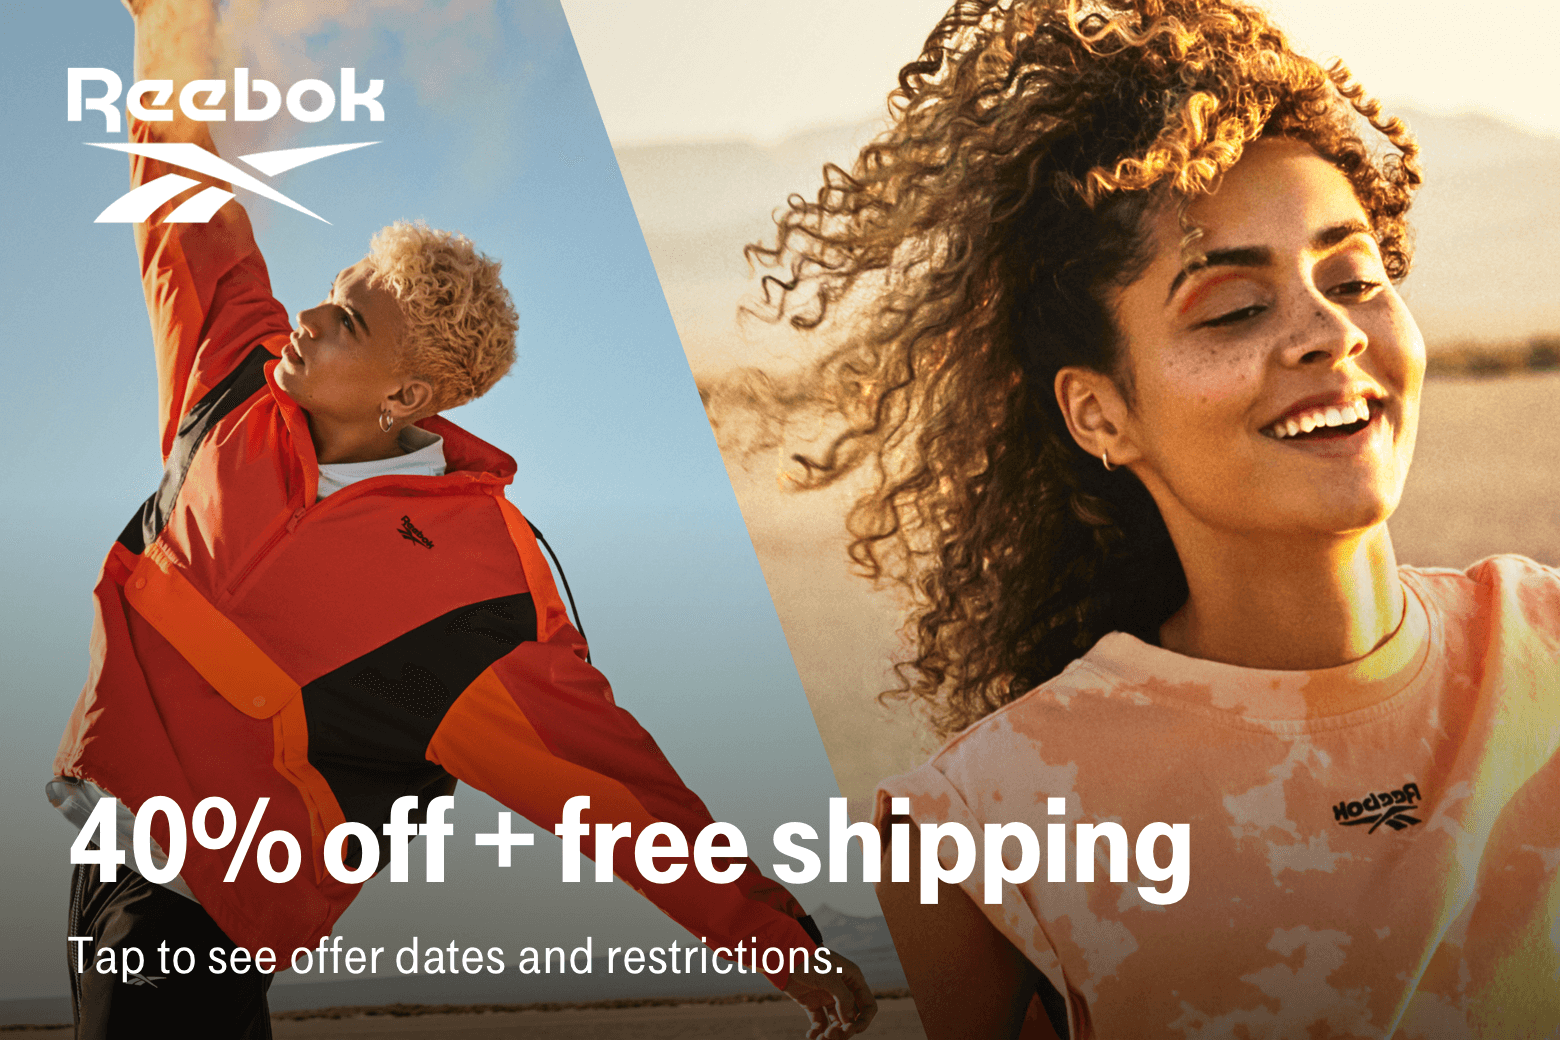 Reebok. 40% off + free shipping. Tap to see offer dates and restrictions.